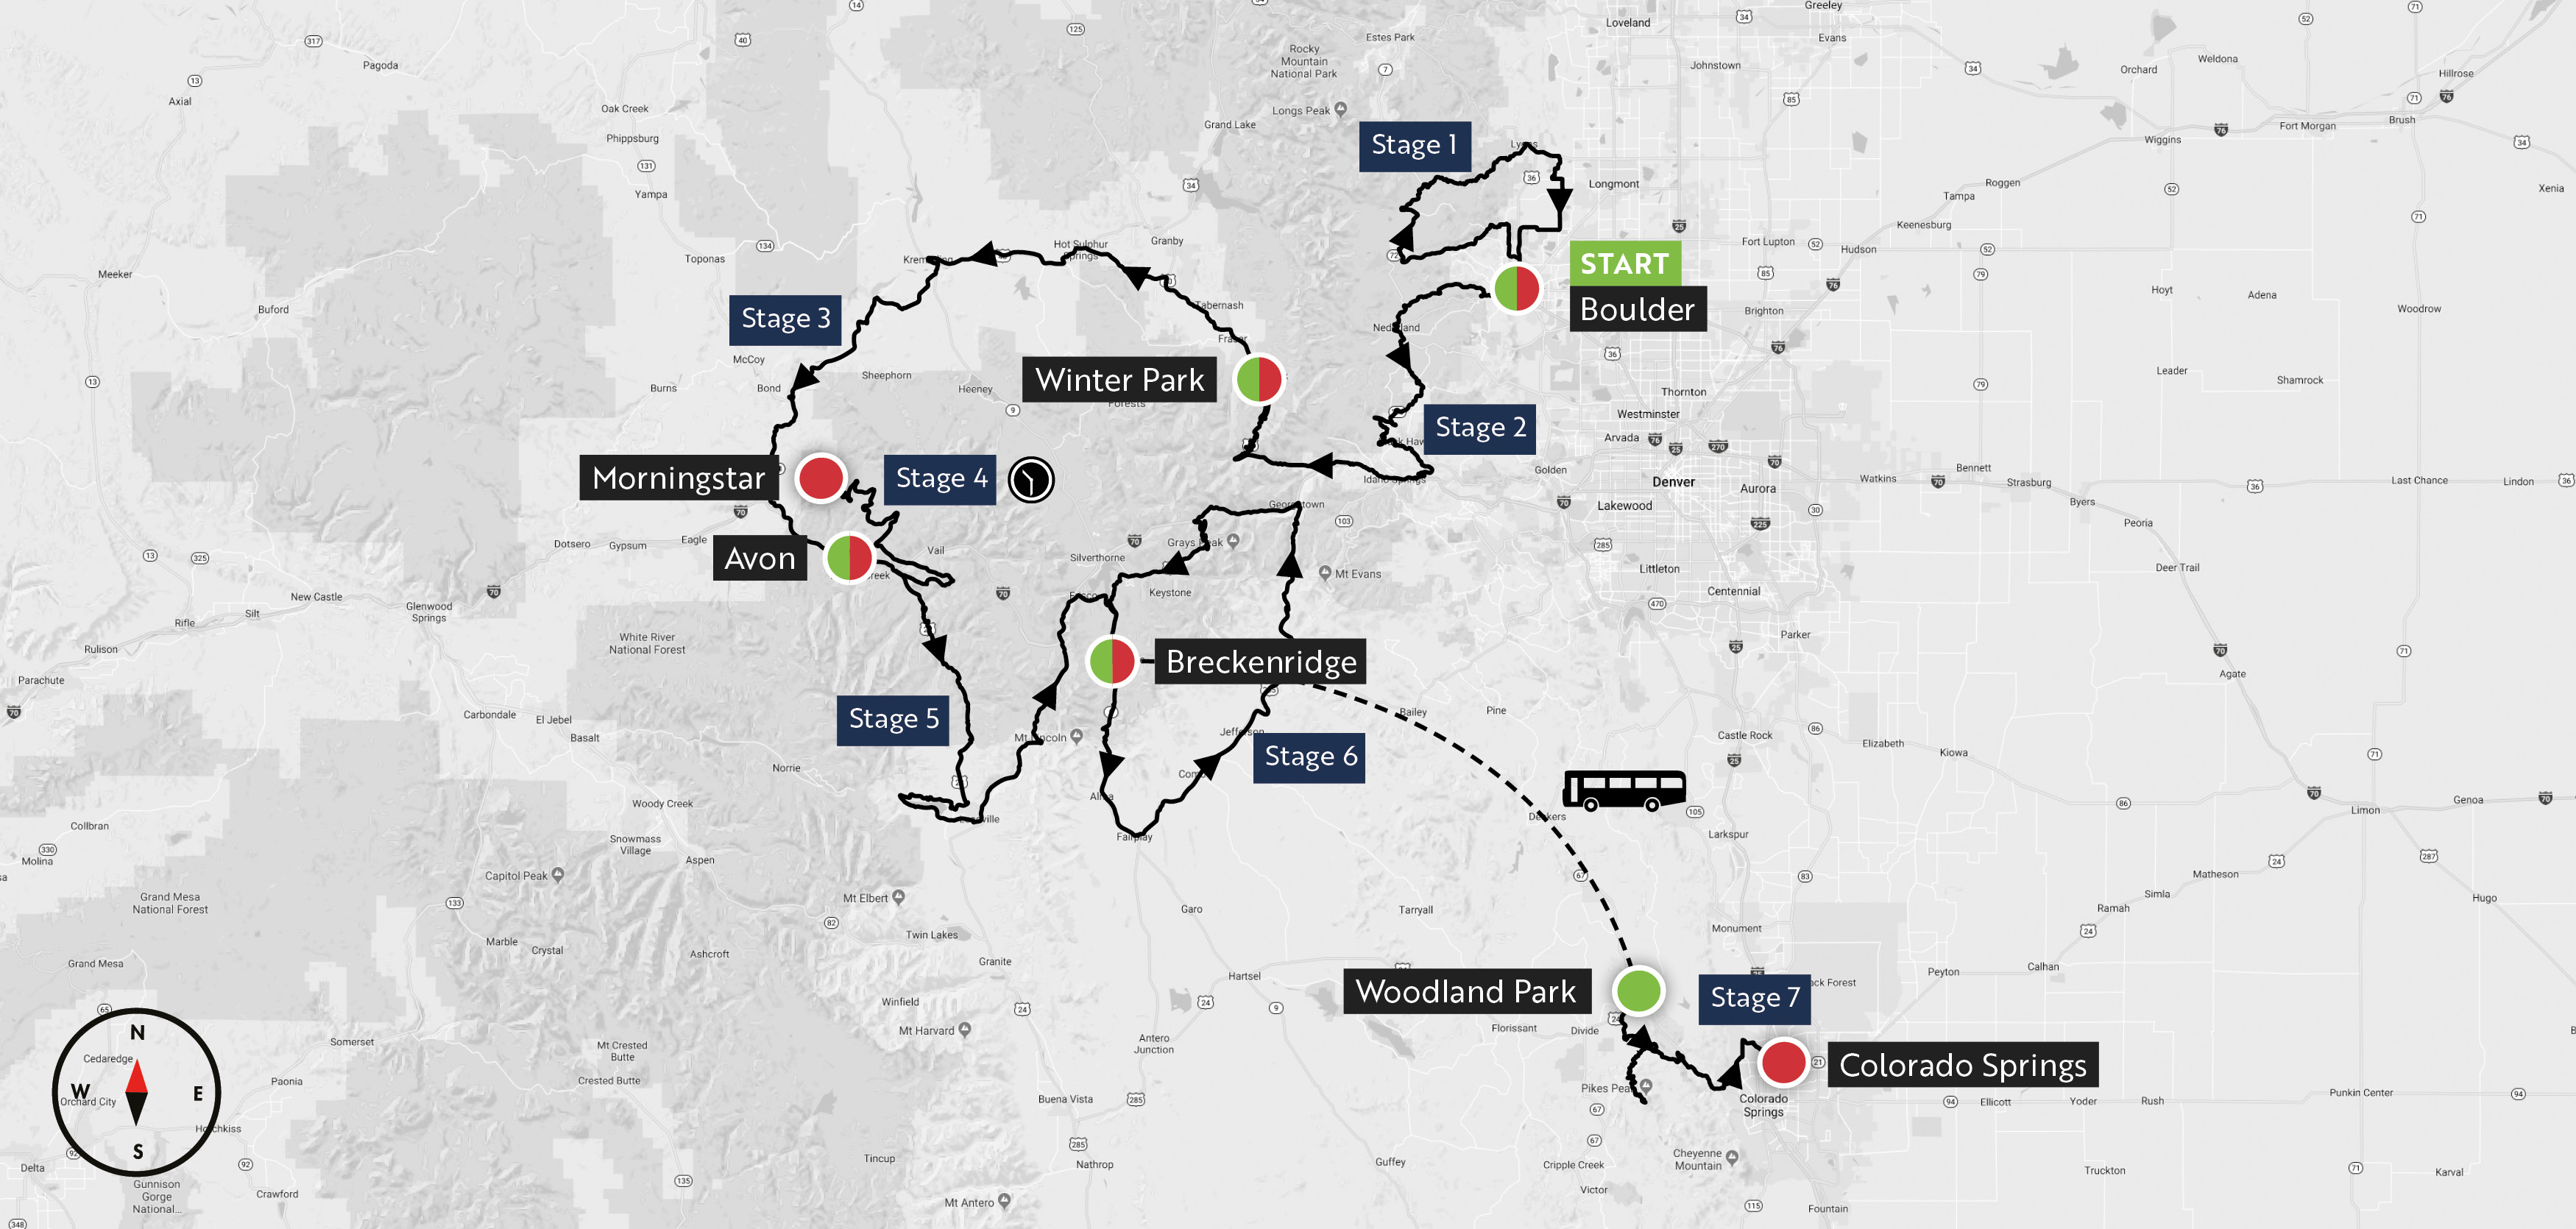 Mavic Haute Route Rockies 2018 route unveiled: over 15,000 metres of climbing